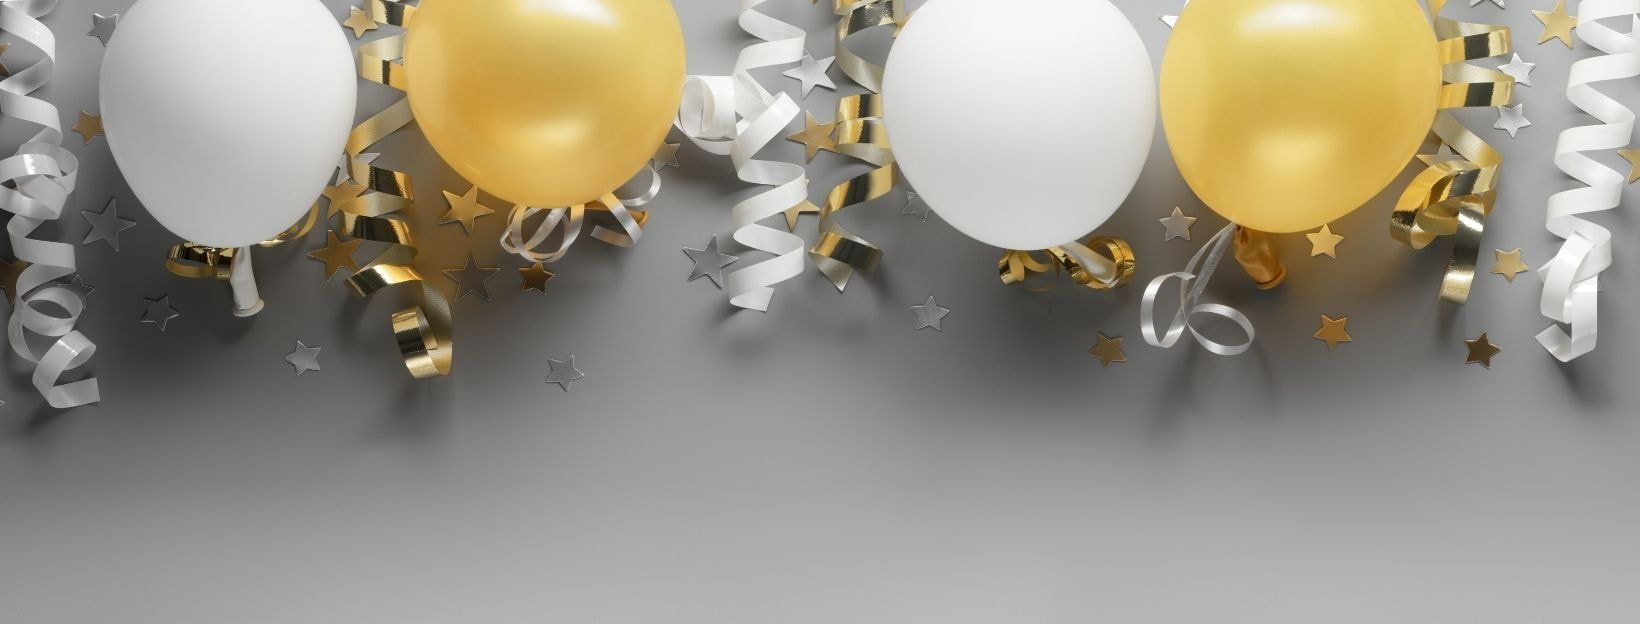 BANNER-Canva-MADD5j4IMUw-party-ornaments-for-new-year-eve